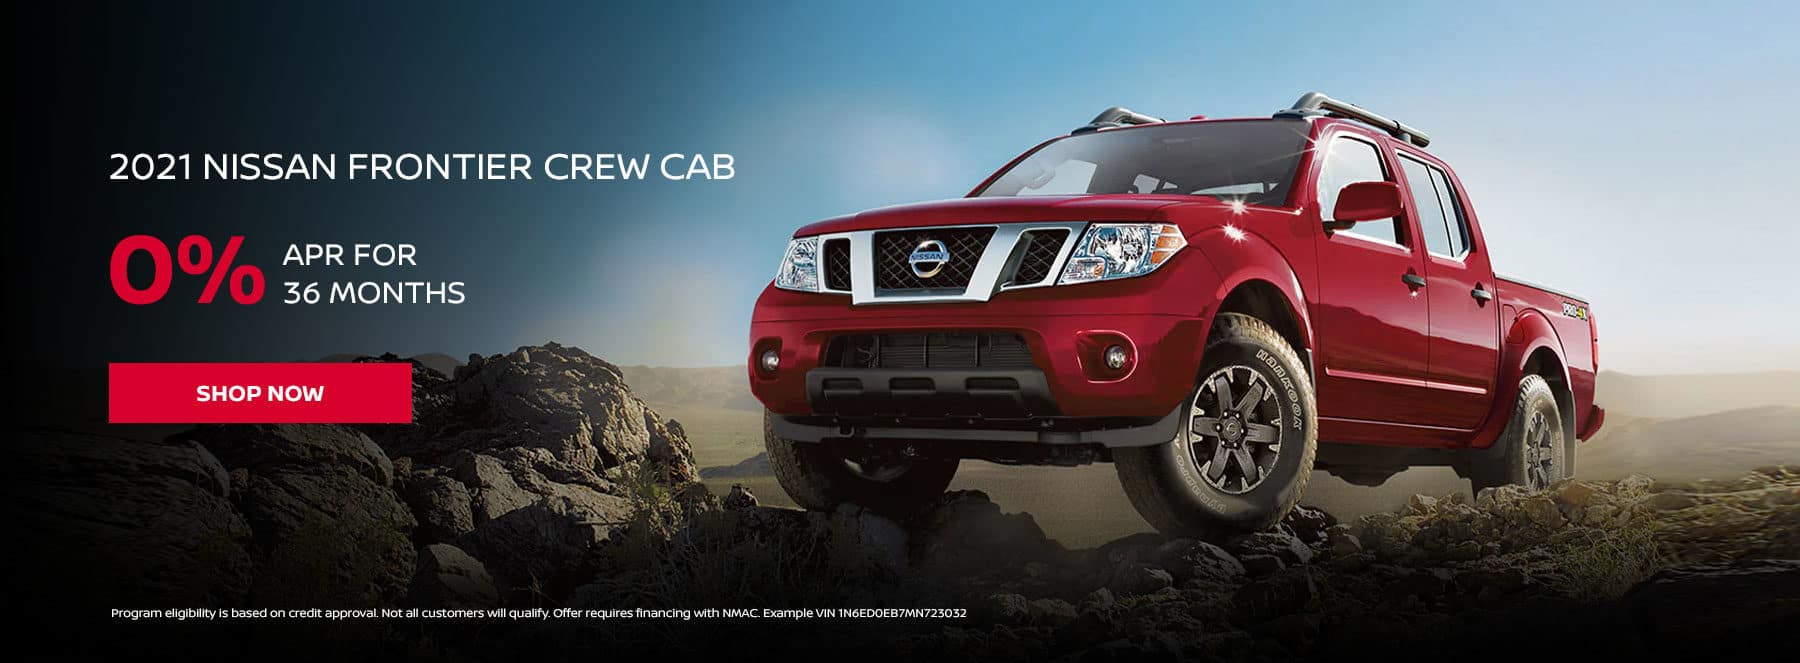 2021 NISSAN FRONTIER CREW CAB 0% APR for 36 months